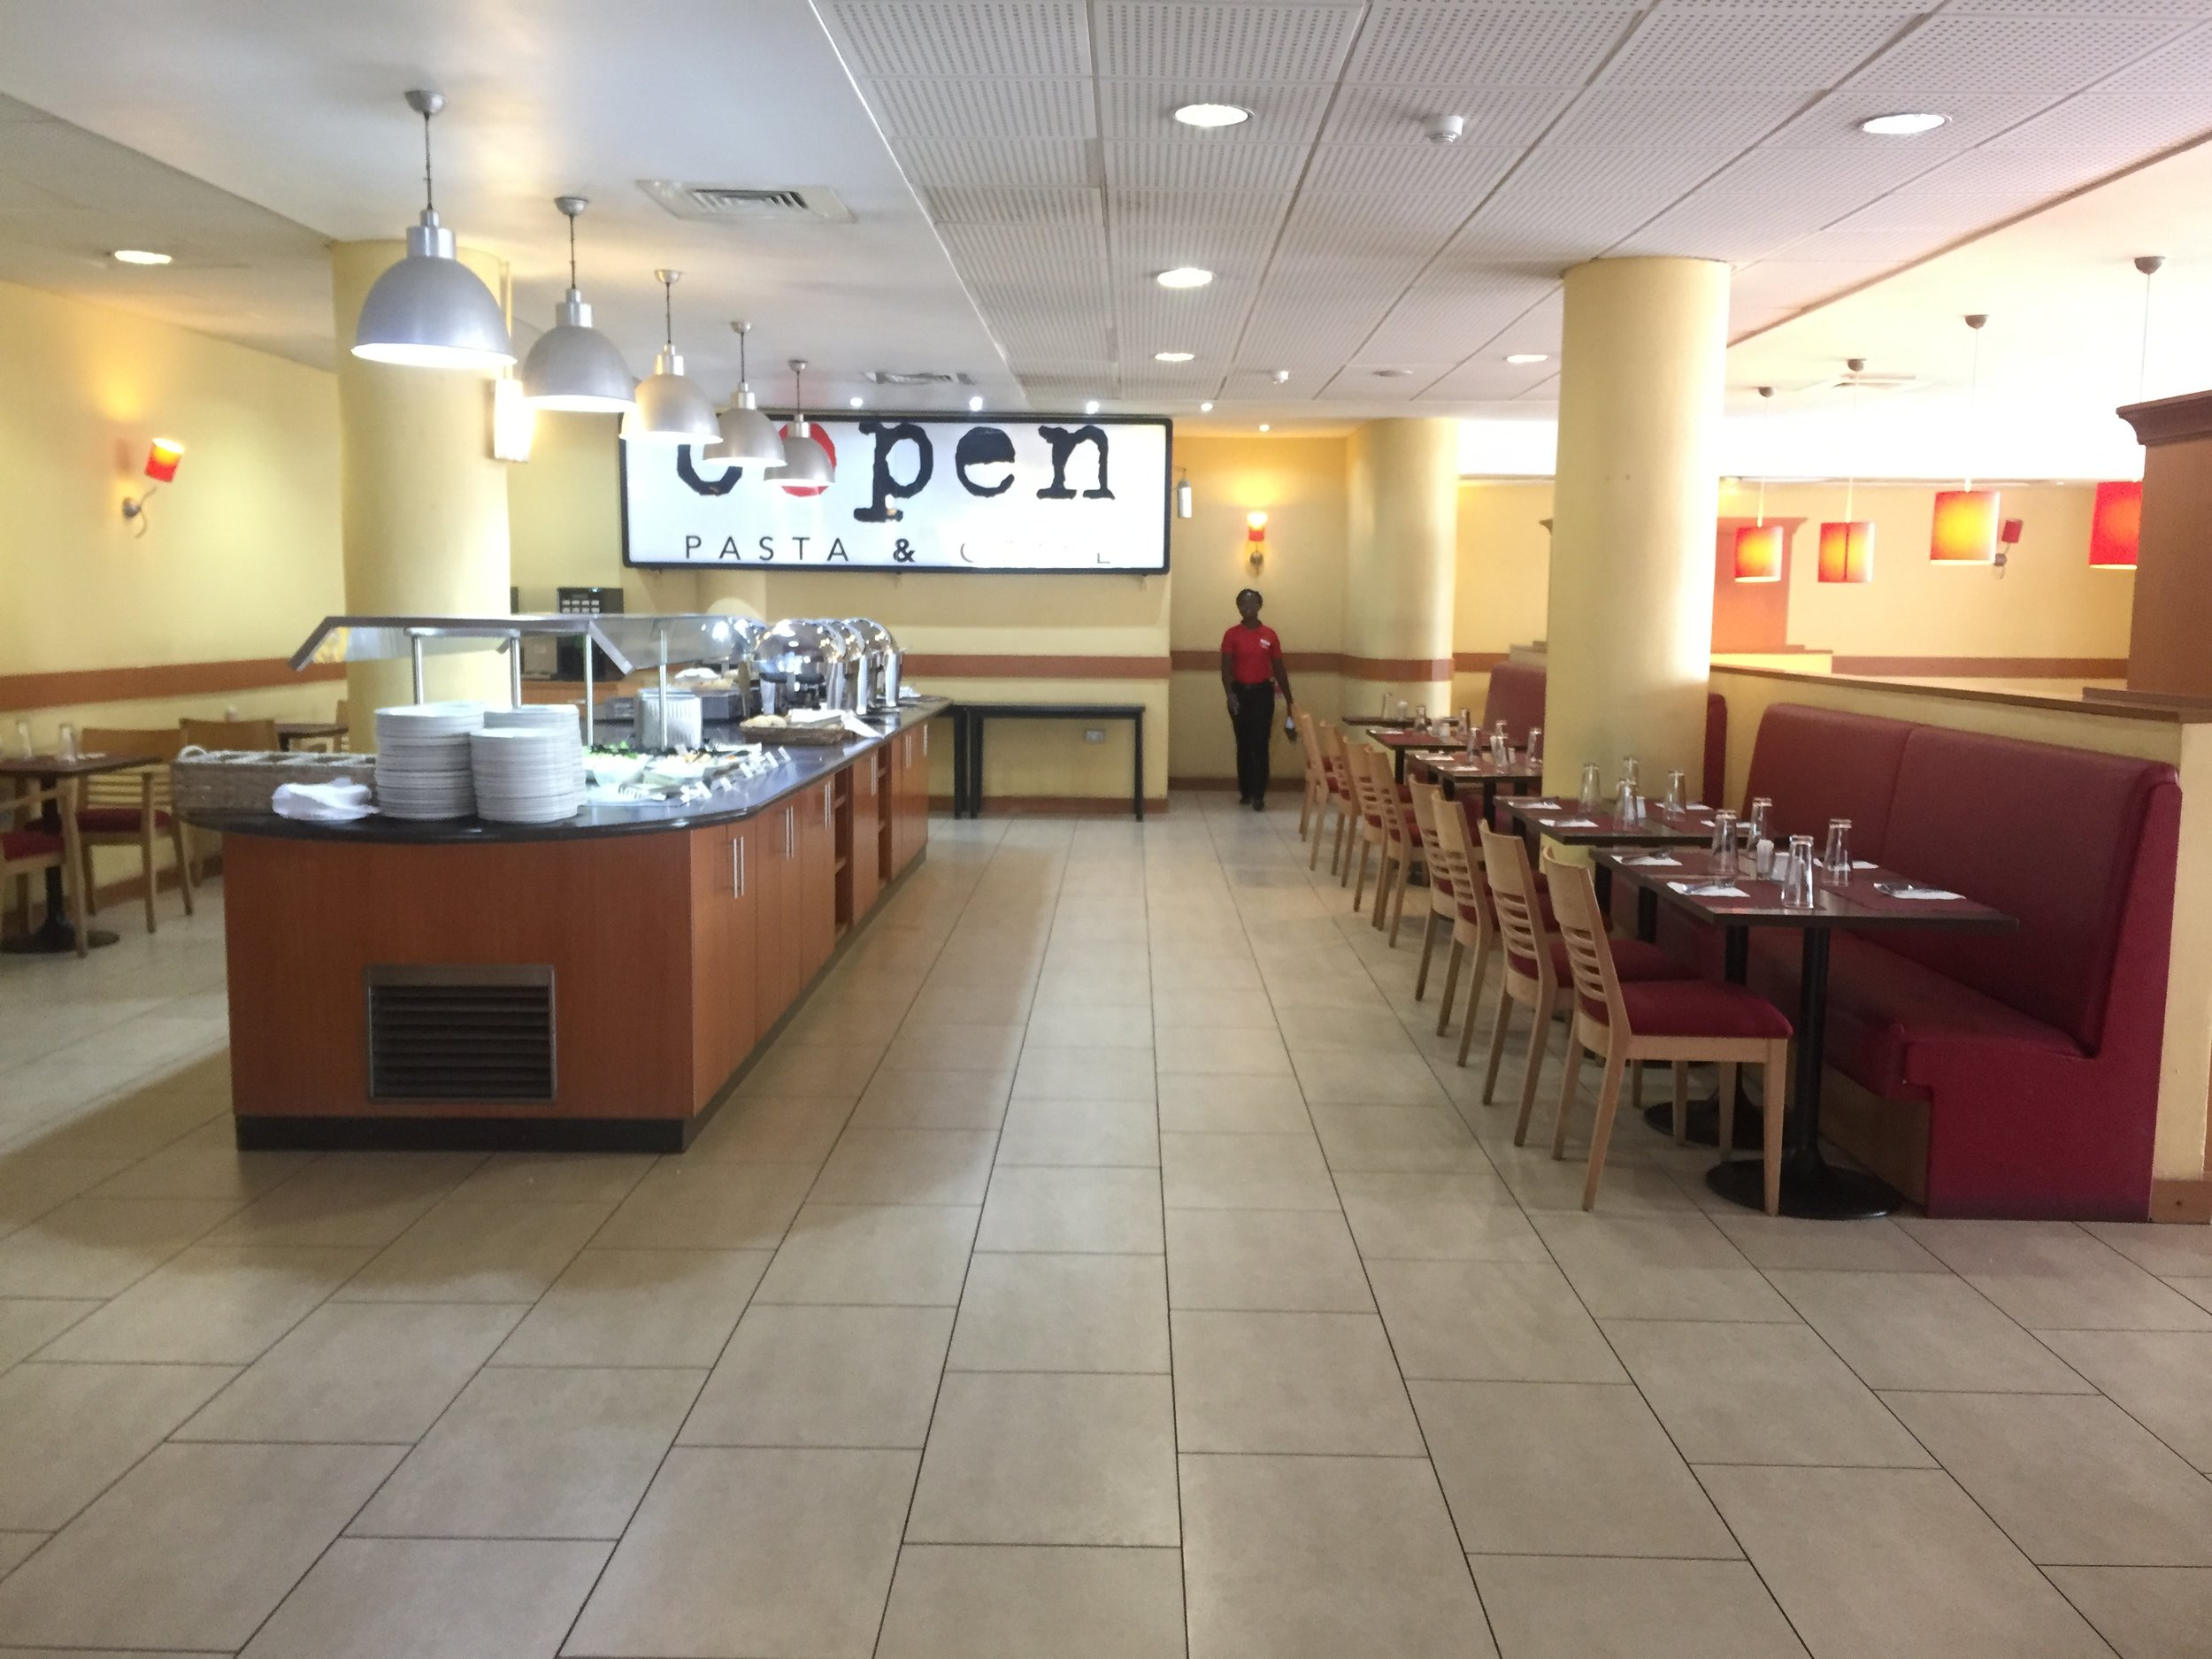 IBIS Airport hotel | Hotels in LagosThe dining area. Breakfast is buffet and complimentary for ONE. An additional person will cost 4,500 or so. Lunch and dinner are buffet for N7,500 or so. Ridiculously expensive!.